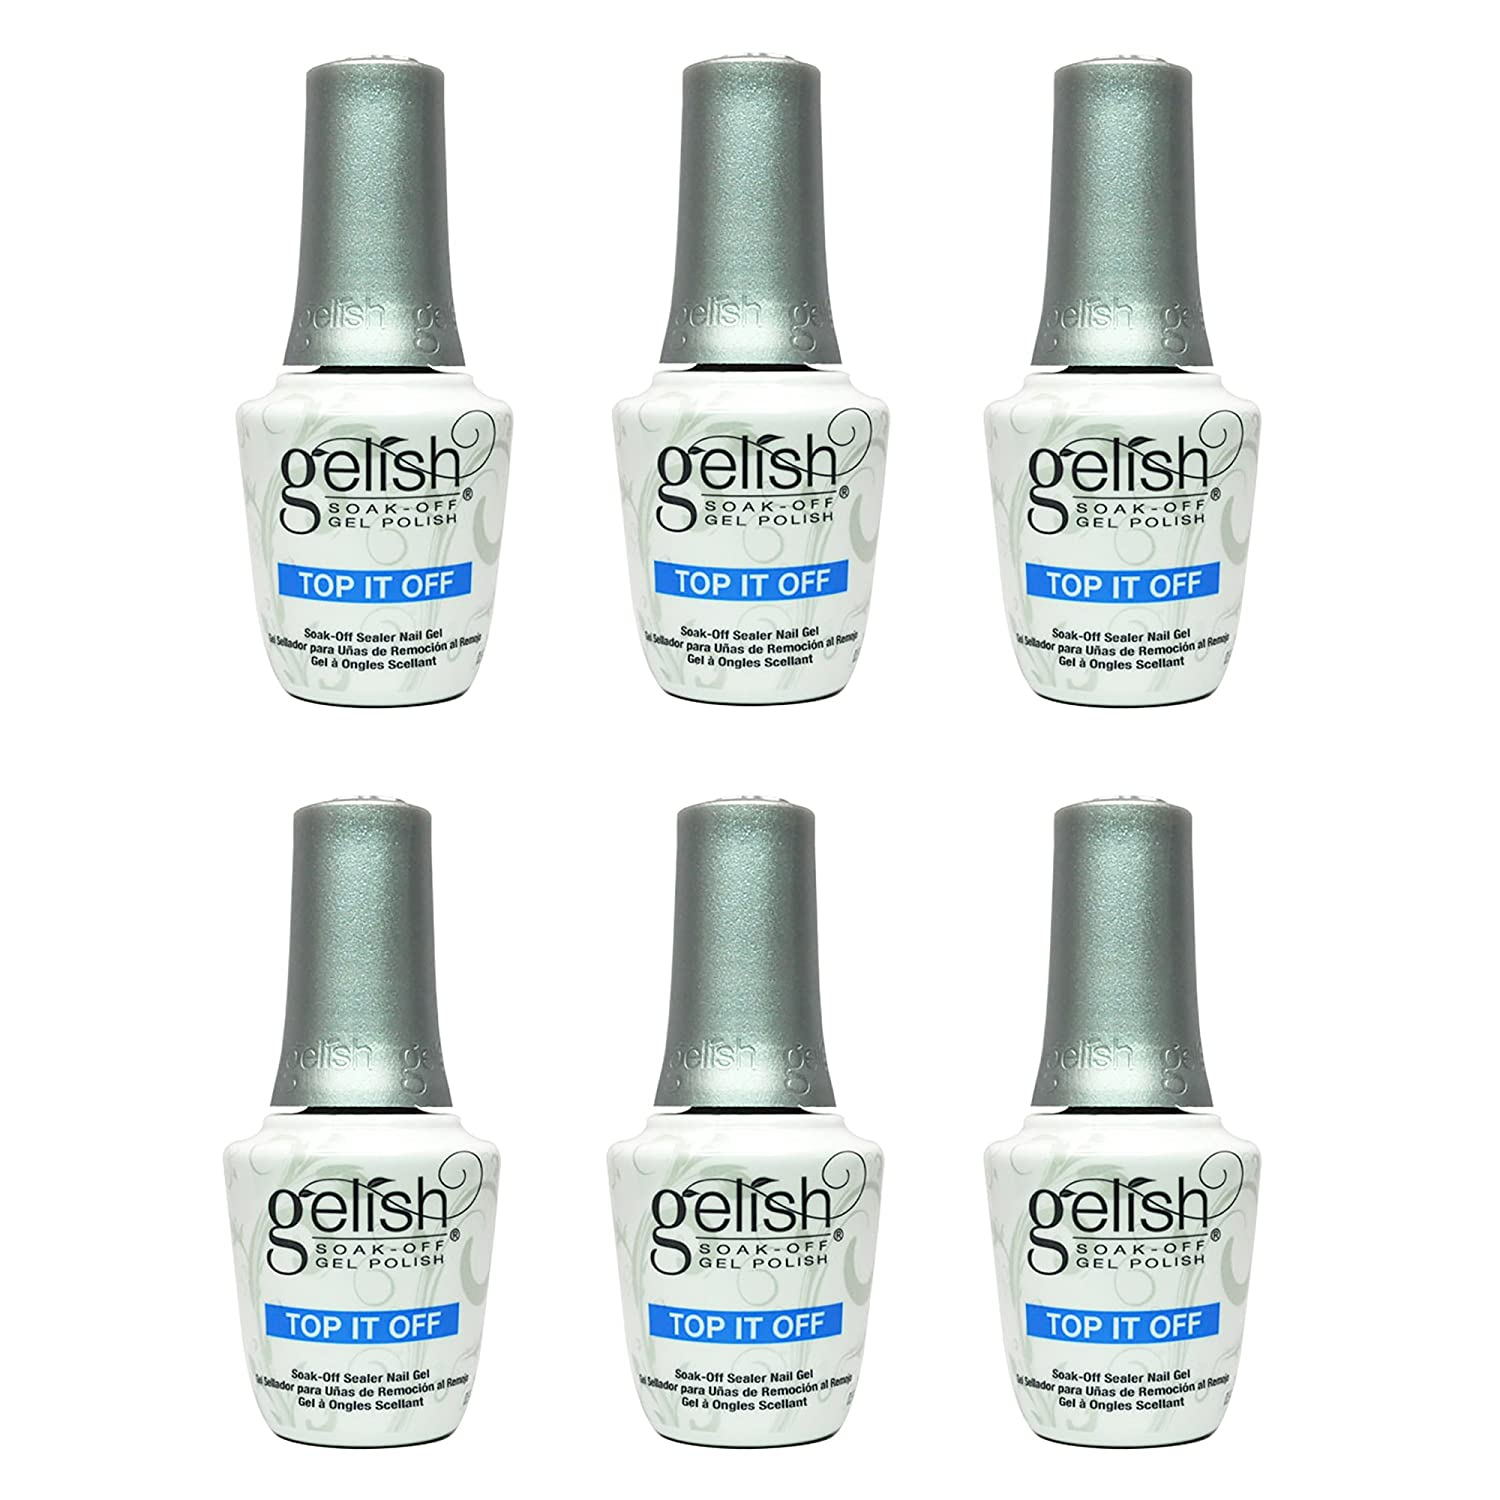 Gelish Harmony 0.5 Fluid Oz. Soak-Off Top-It-Off Sealer Gel Polish (6 Pack)